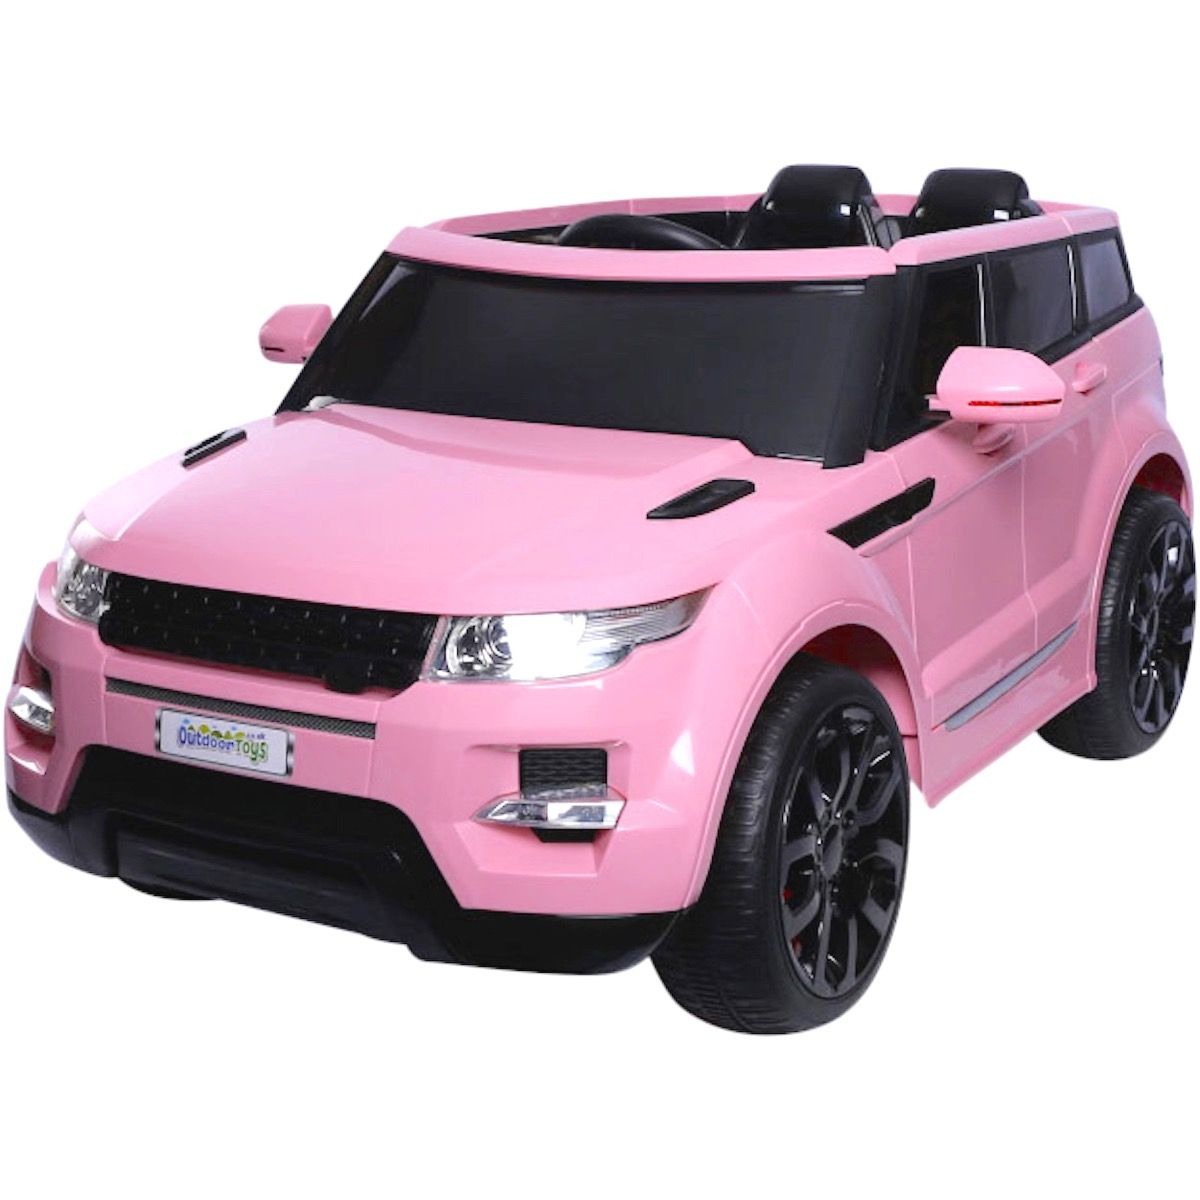 d4b3ee43c0b Maxi Range Rover HSE Sport Style 12v Electric Battery Ride on Jeep - Pink  For Just £199.95